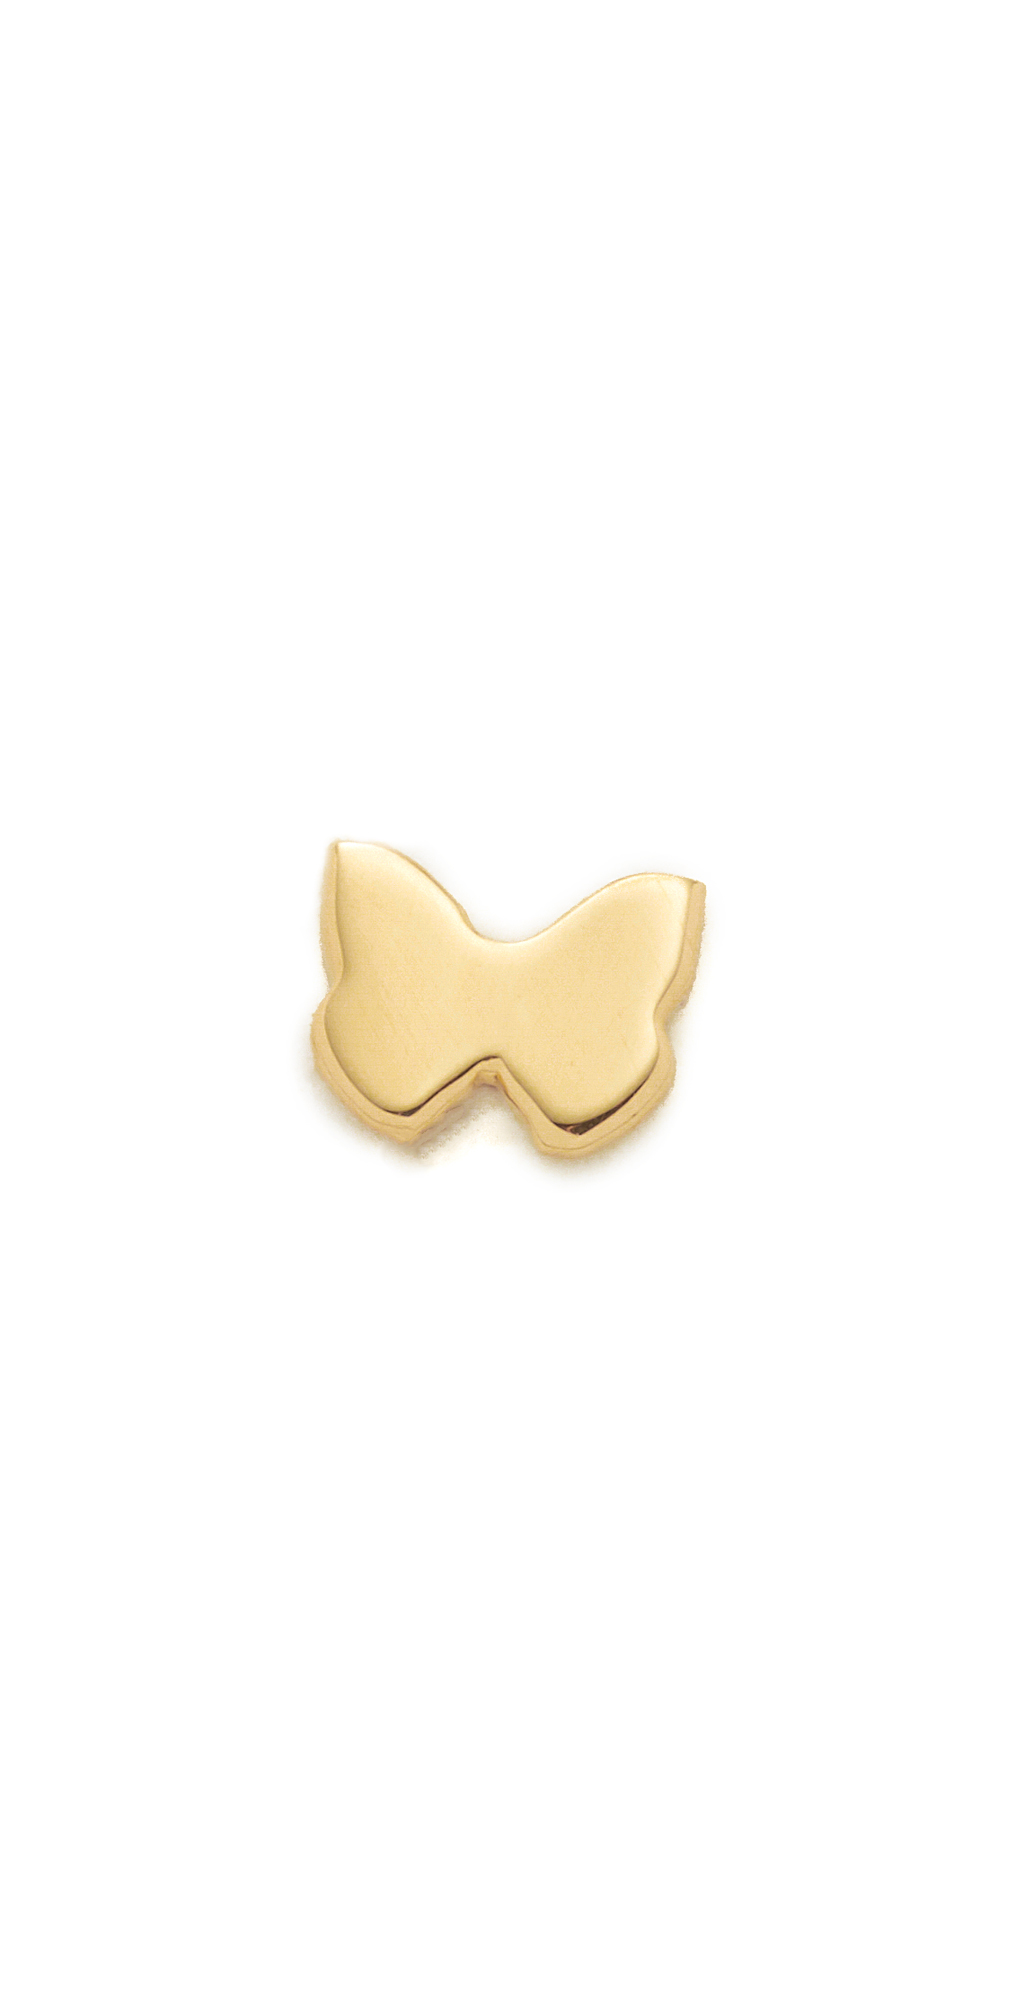 14k Gold Menagerie Butterfly Stud Earring Ariel Gordon Jewelry